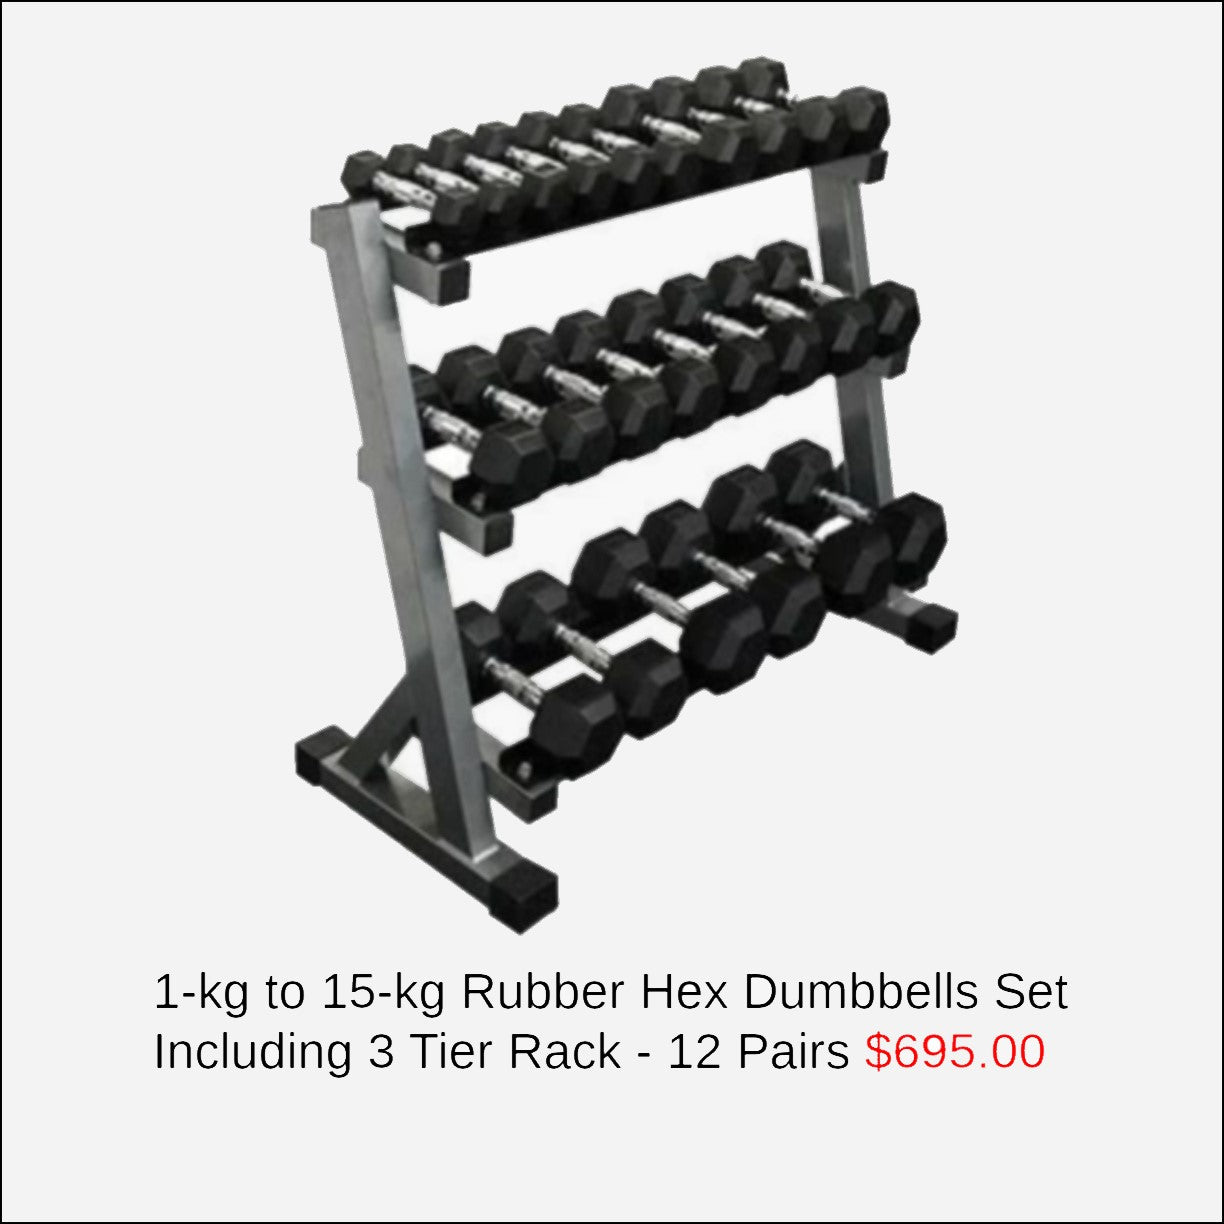 1KG - 15KG (12 PAIR) RUBBER HEX DUMBBELL SET WITH 3 TIER RACK Muscle Motion Rubber coated hexagonal dumbbells with ergonomic handles are designed for increased comfort and improved durability. Rubber coating reduces noise improves life cycle of the product  (other finishes such as chrome and cast iron are subject to chipping and rust). Rubber coated dumbbells are also kinder on floor surfaces. The hexagonal shaped ends are designed to prevent the dumbbell from rolling on the floor or dumbbell rack.  This package includes 12 pairs of commercial grade rubber hex dumbbells including a silver 3 tier rack. Pairs are in the following sizes 1kg 2kg 3kg 4kg 5kg 6kg 7kg 8kg 9kg 10kg 12.5kg 15kg a total 165kg of dumbbells for this set